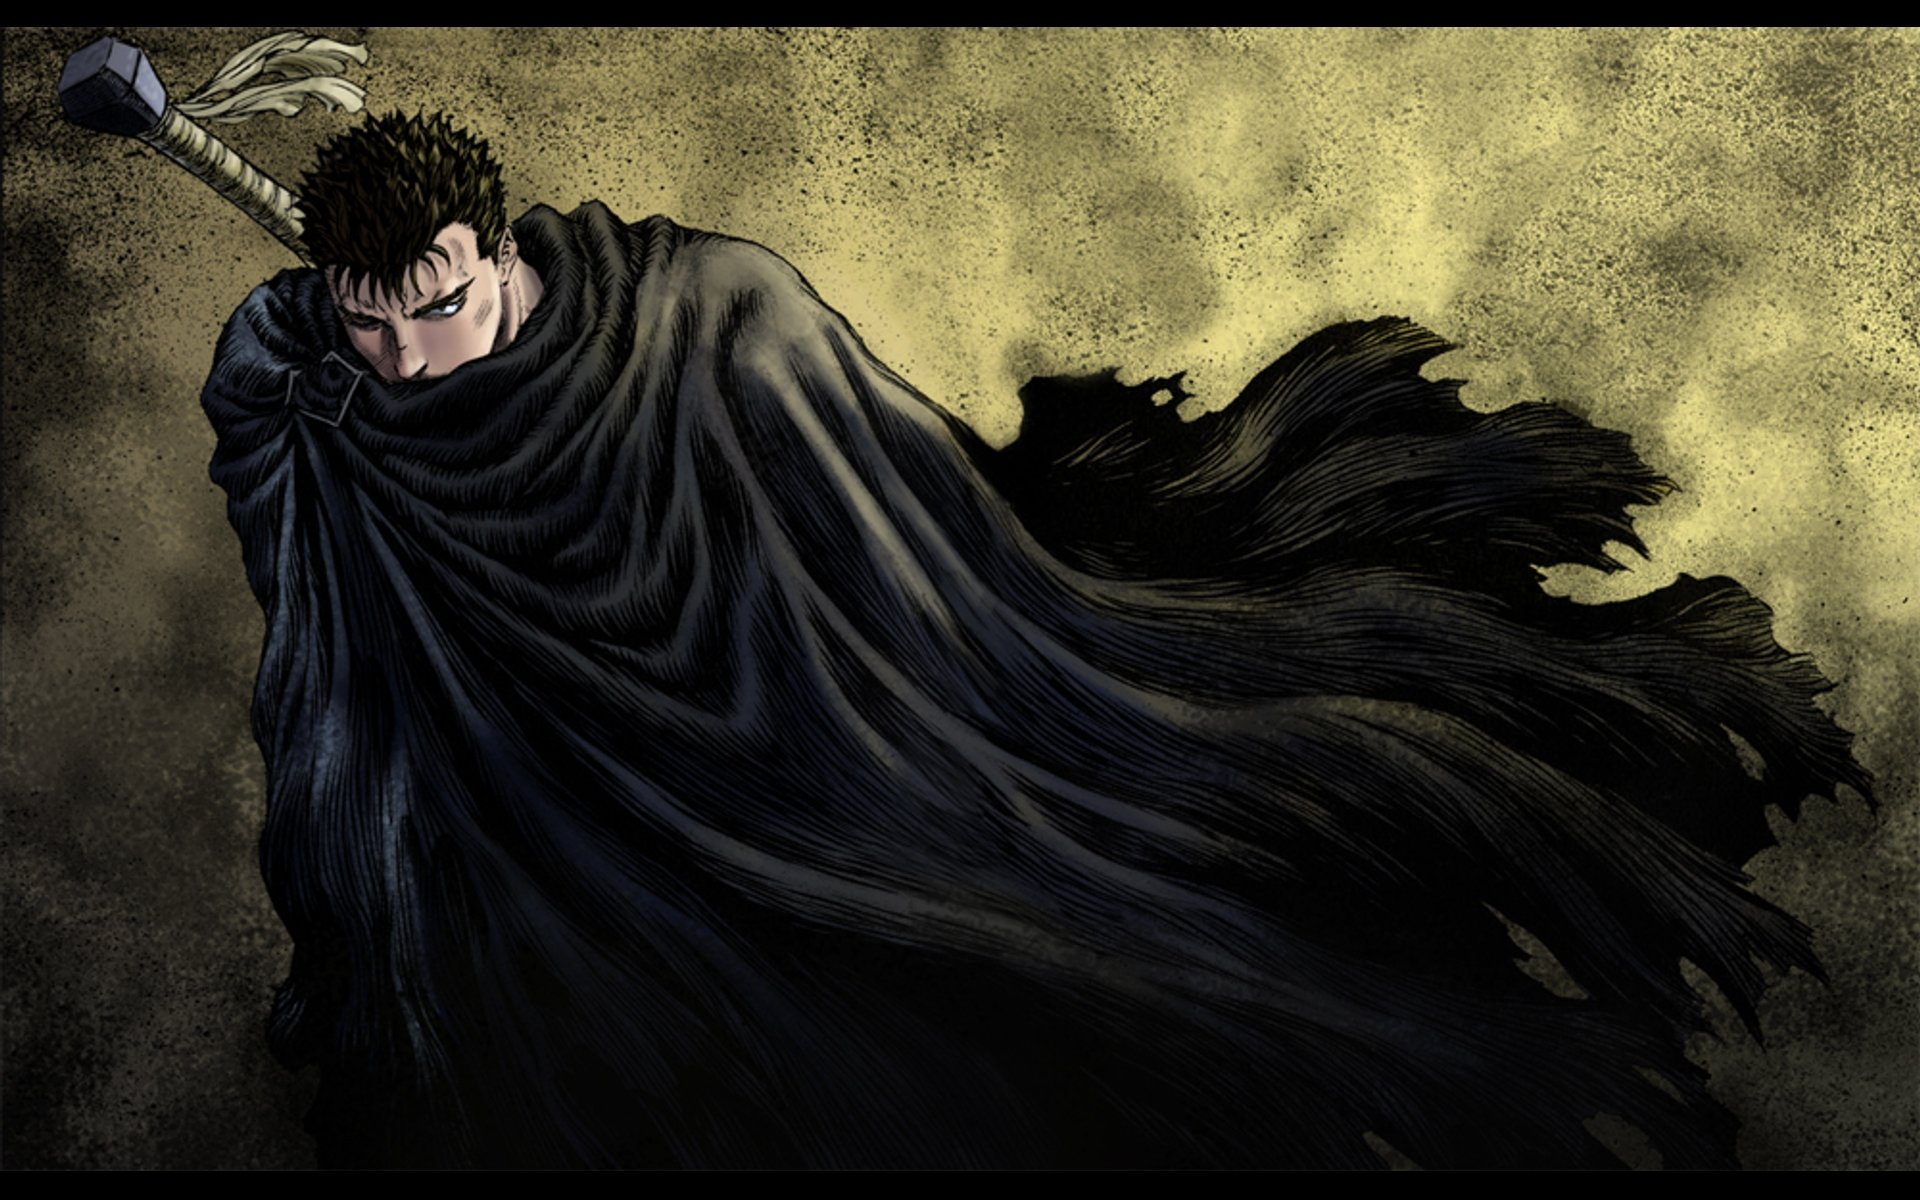 Guts Berserk Wallpapers Hd For Desktop Backgrounds